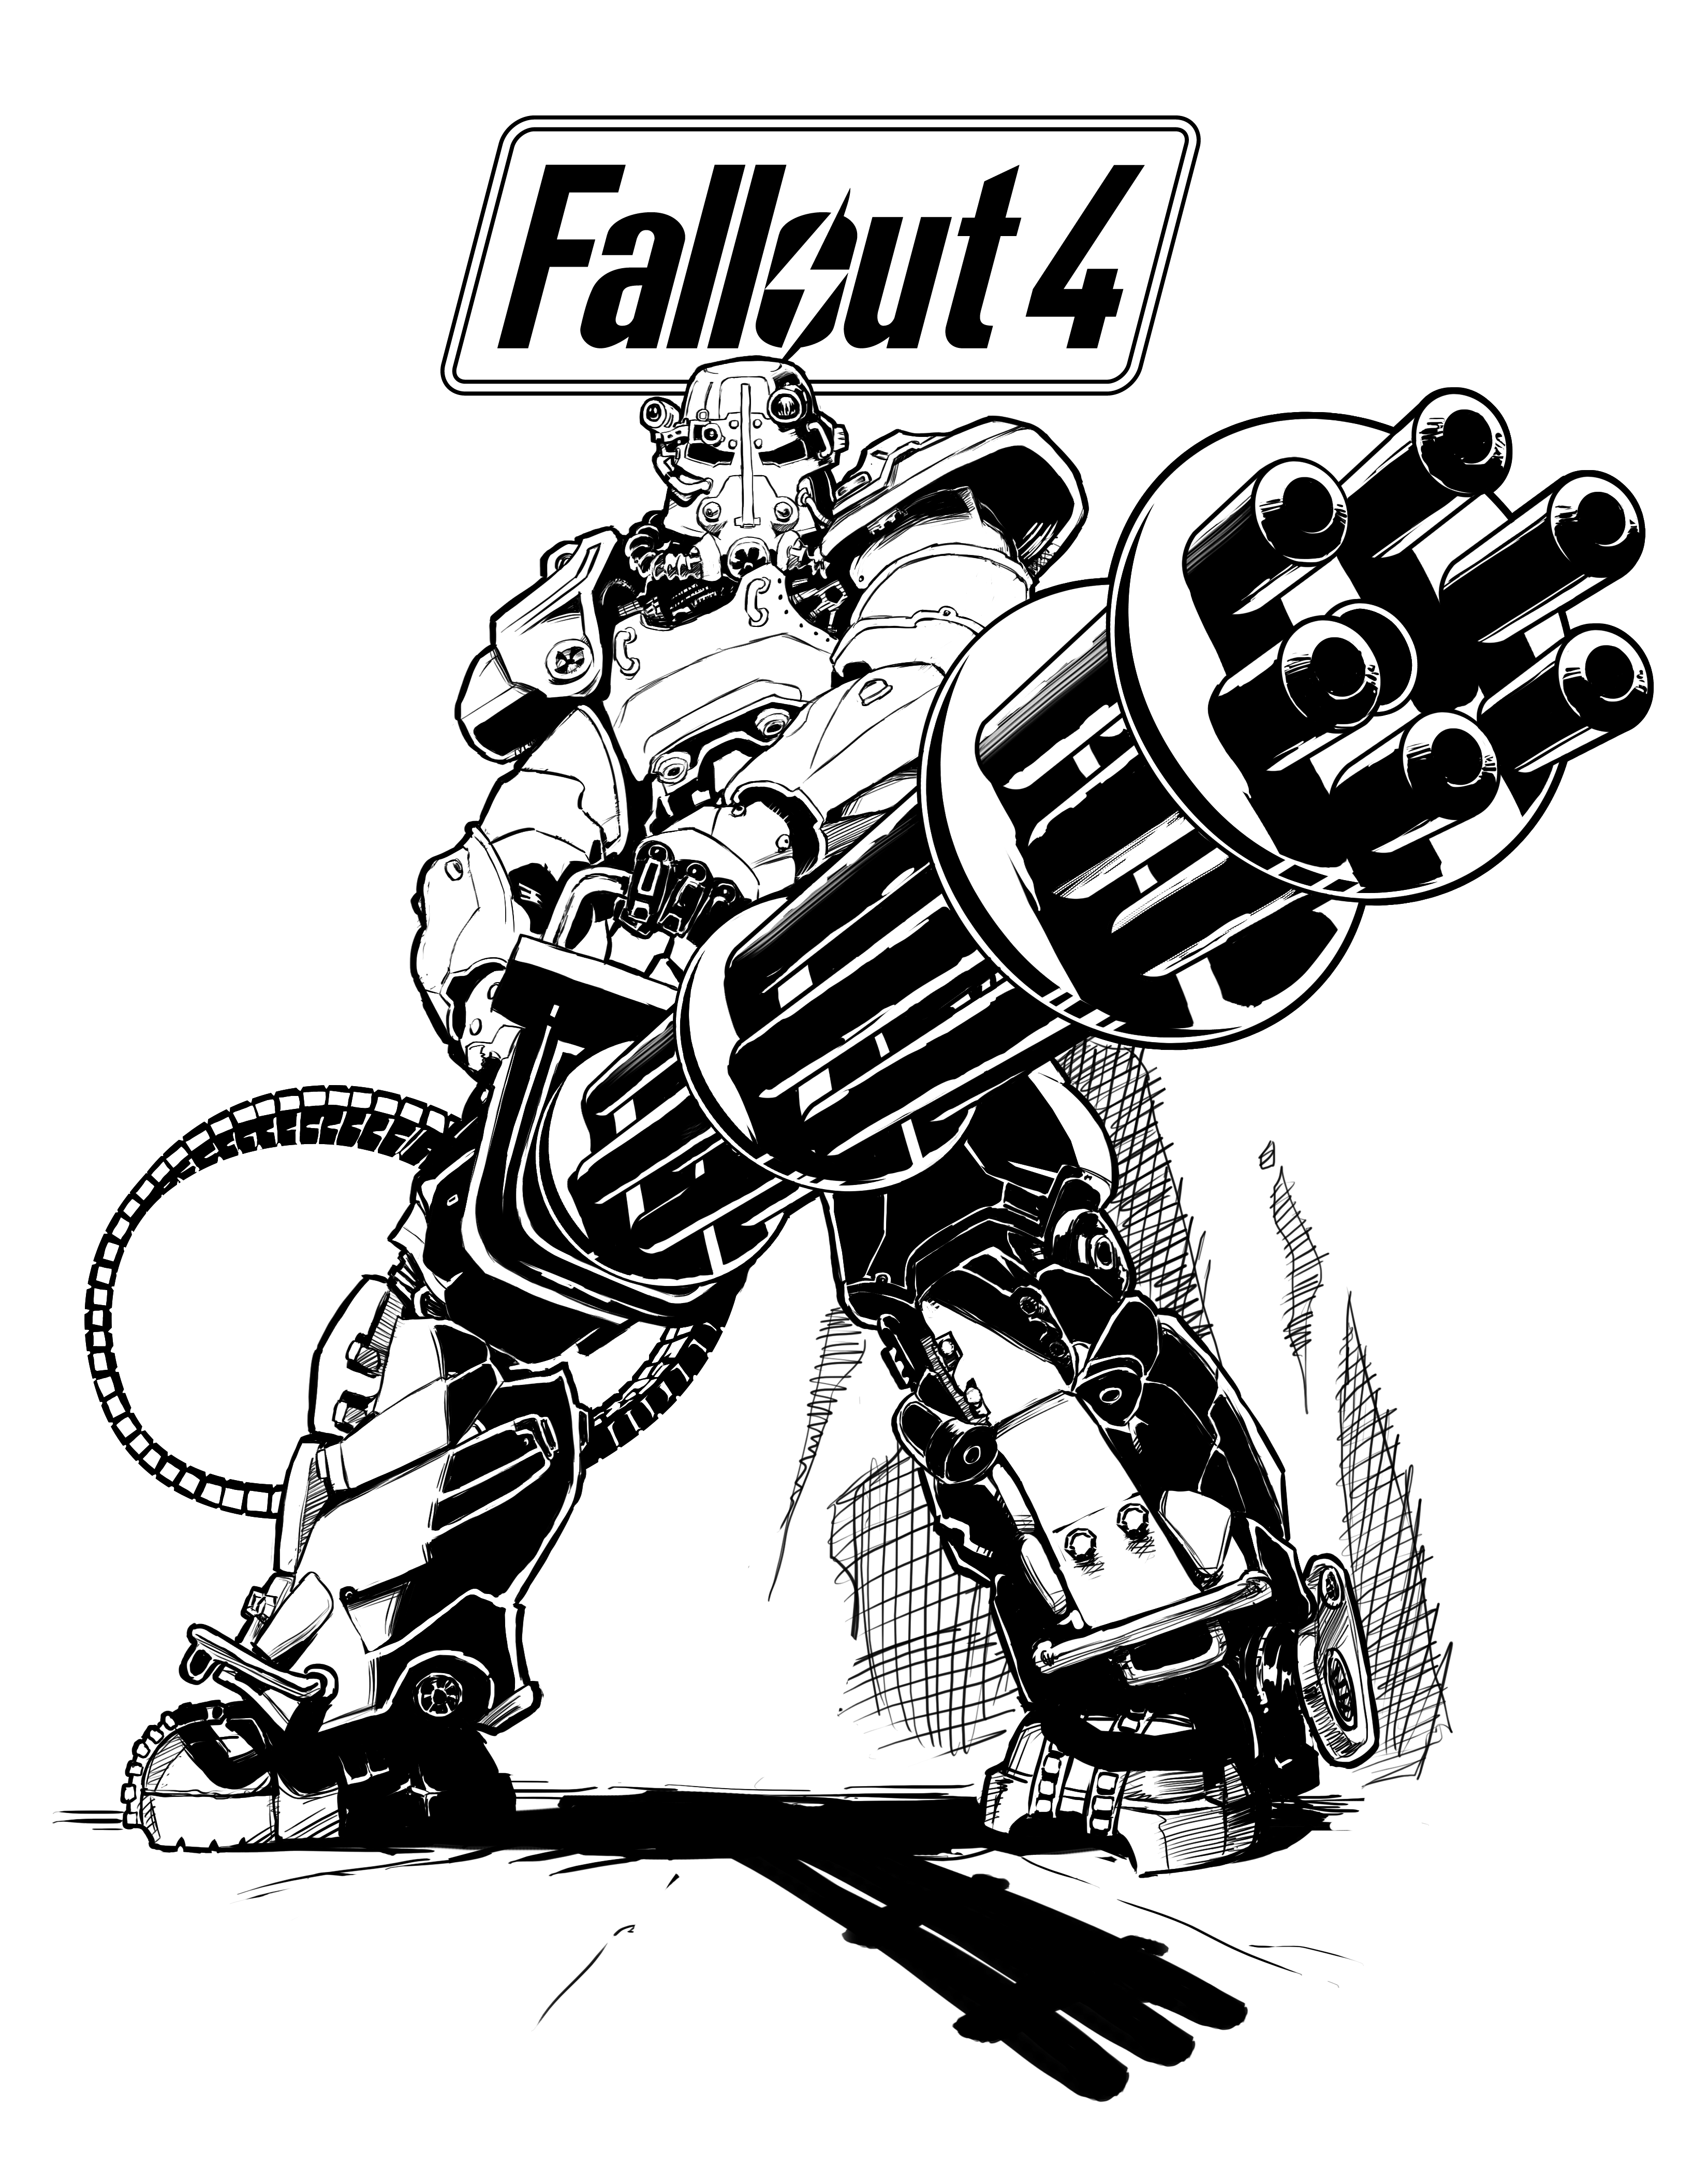 Fallout Power Armor Drawing At Getdrawings